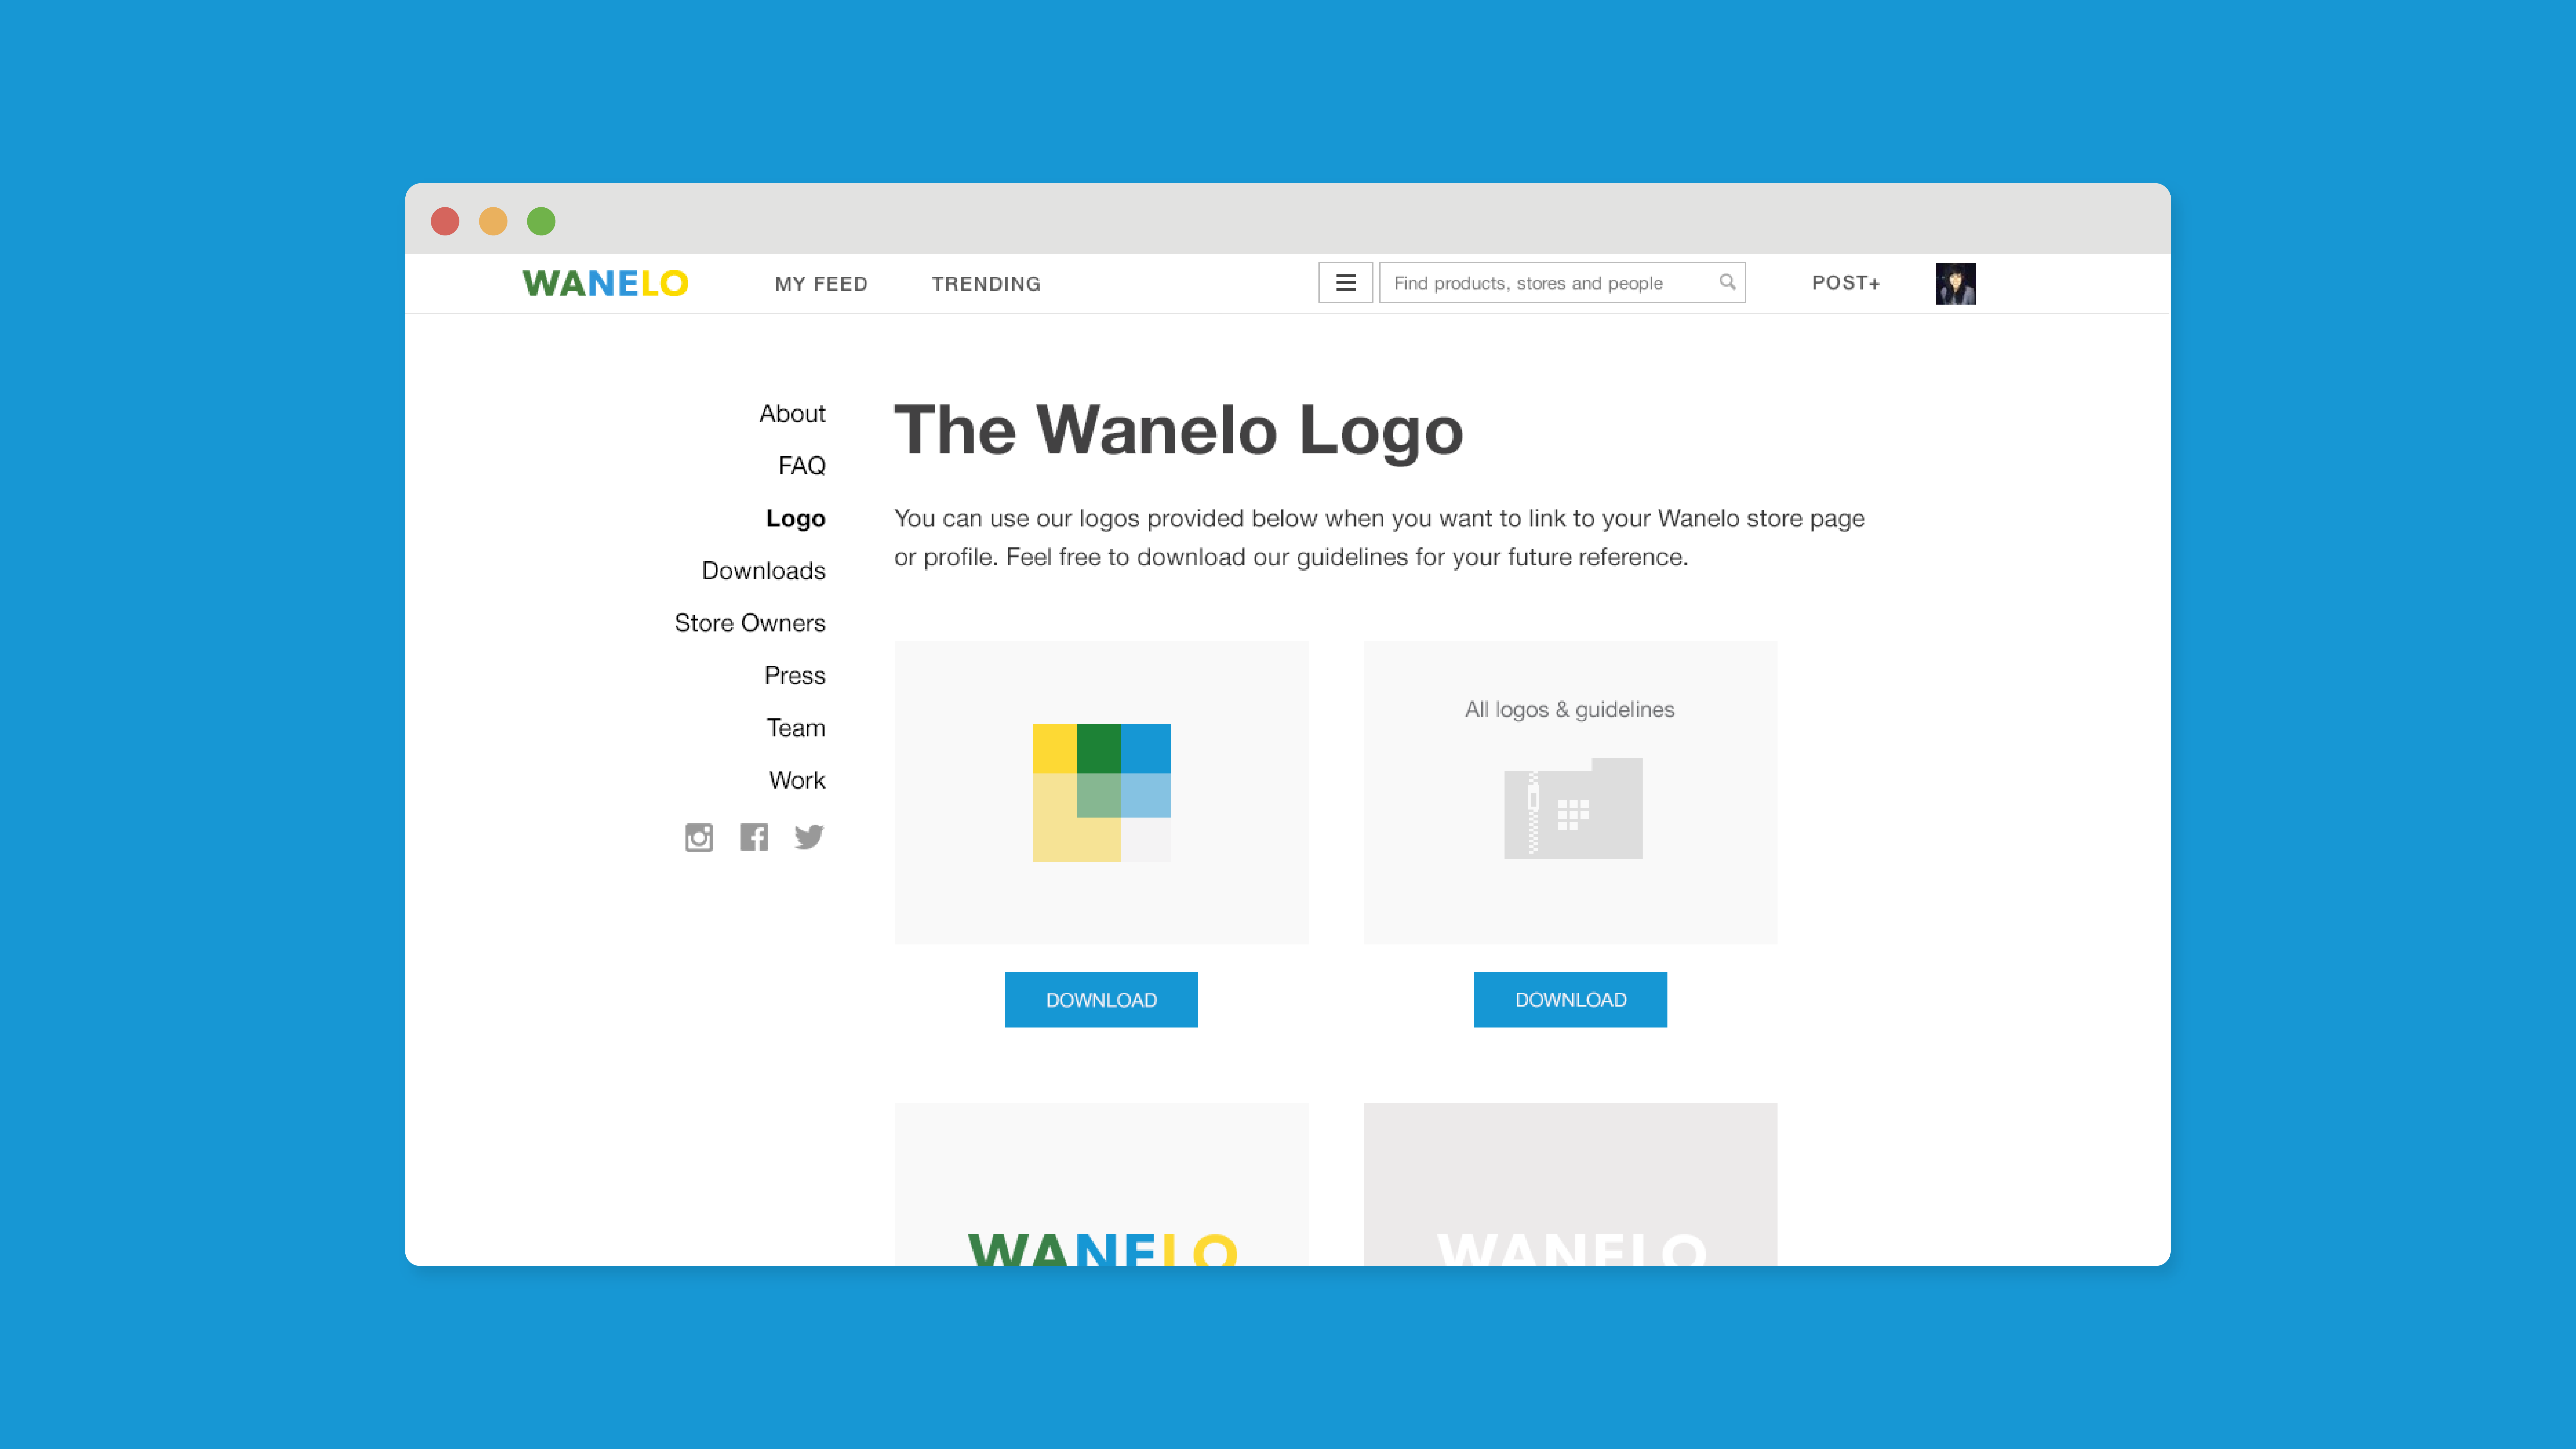 Wanelo Logo and About Pages